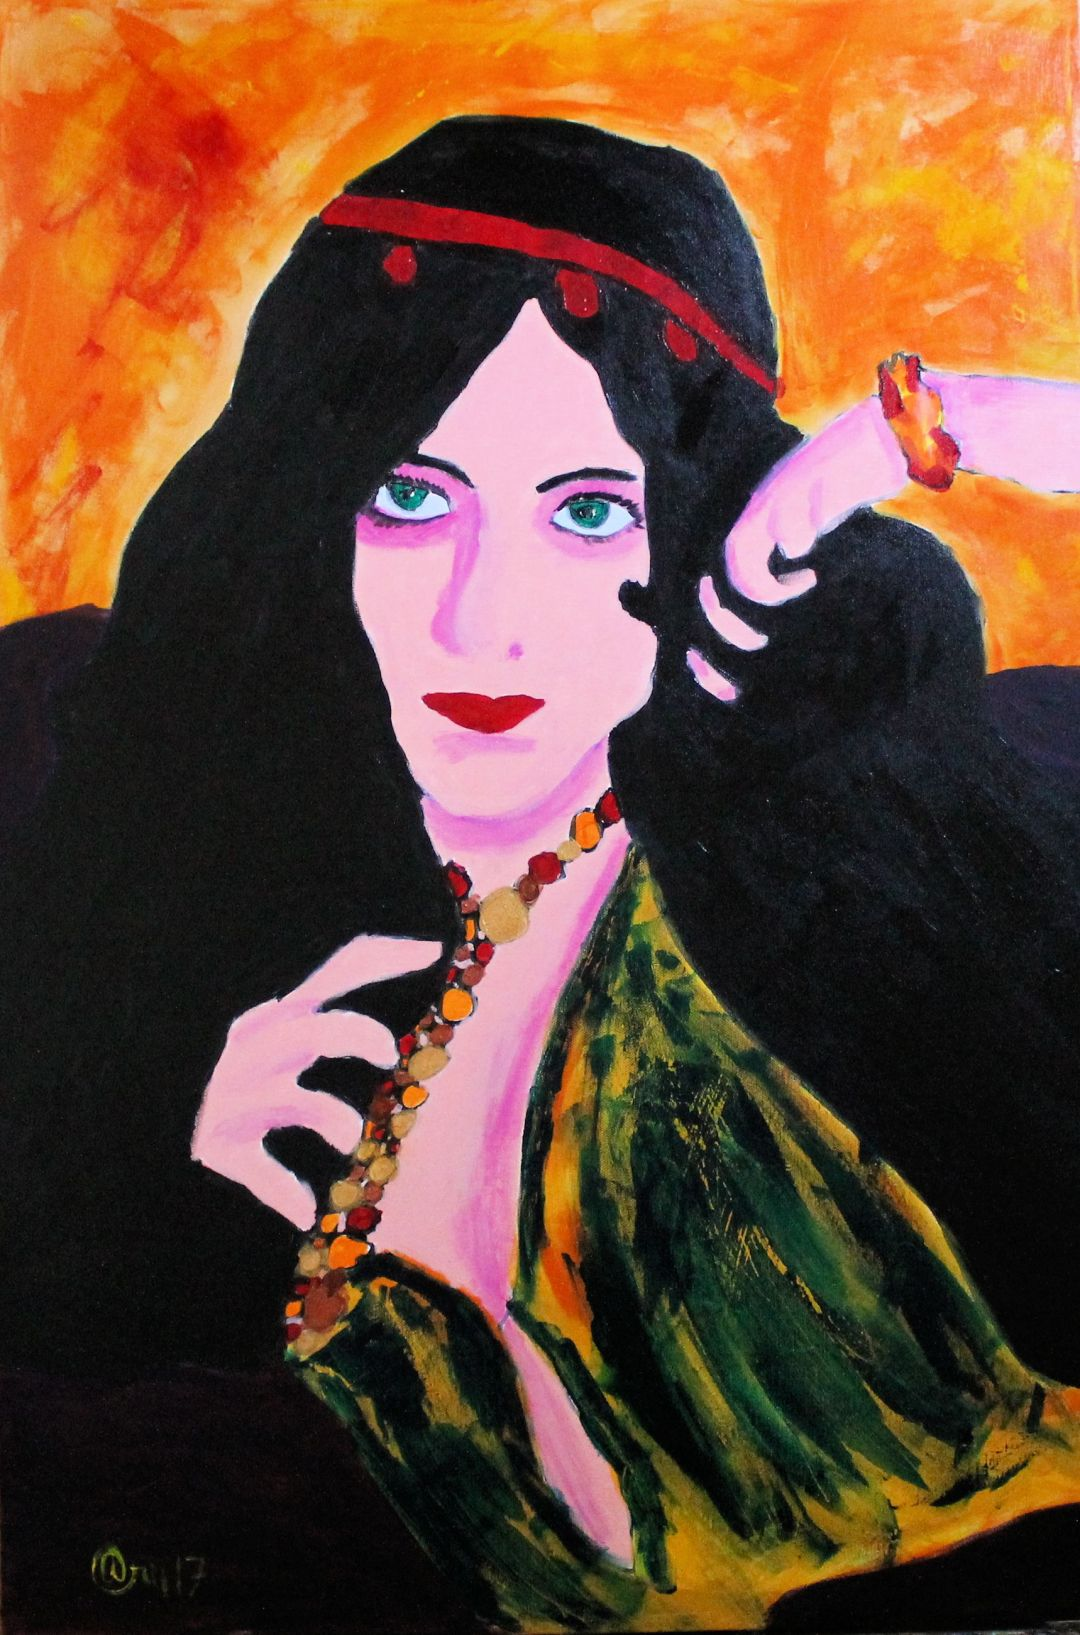 Evelyn Plays, acrylic painting by Audra Arr